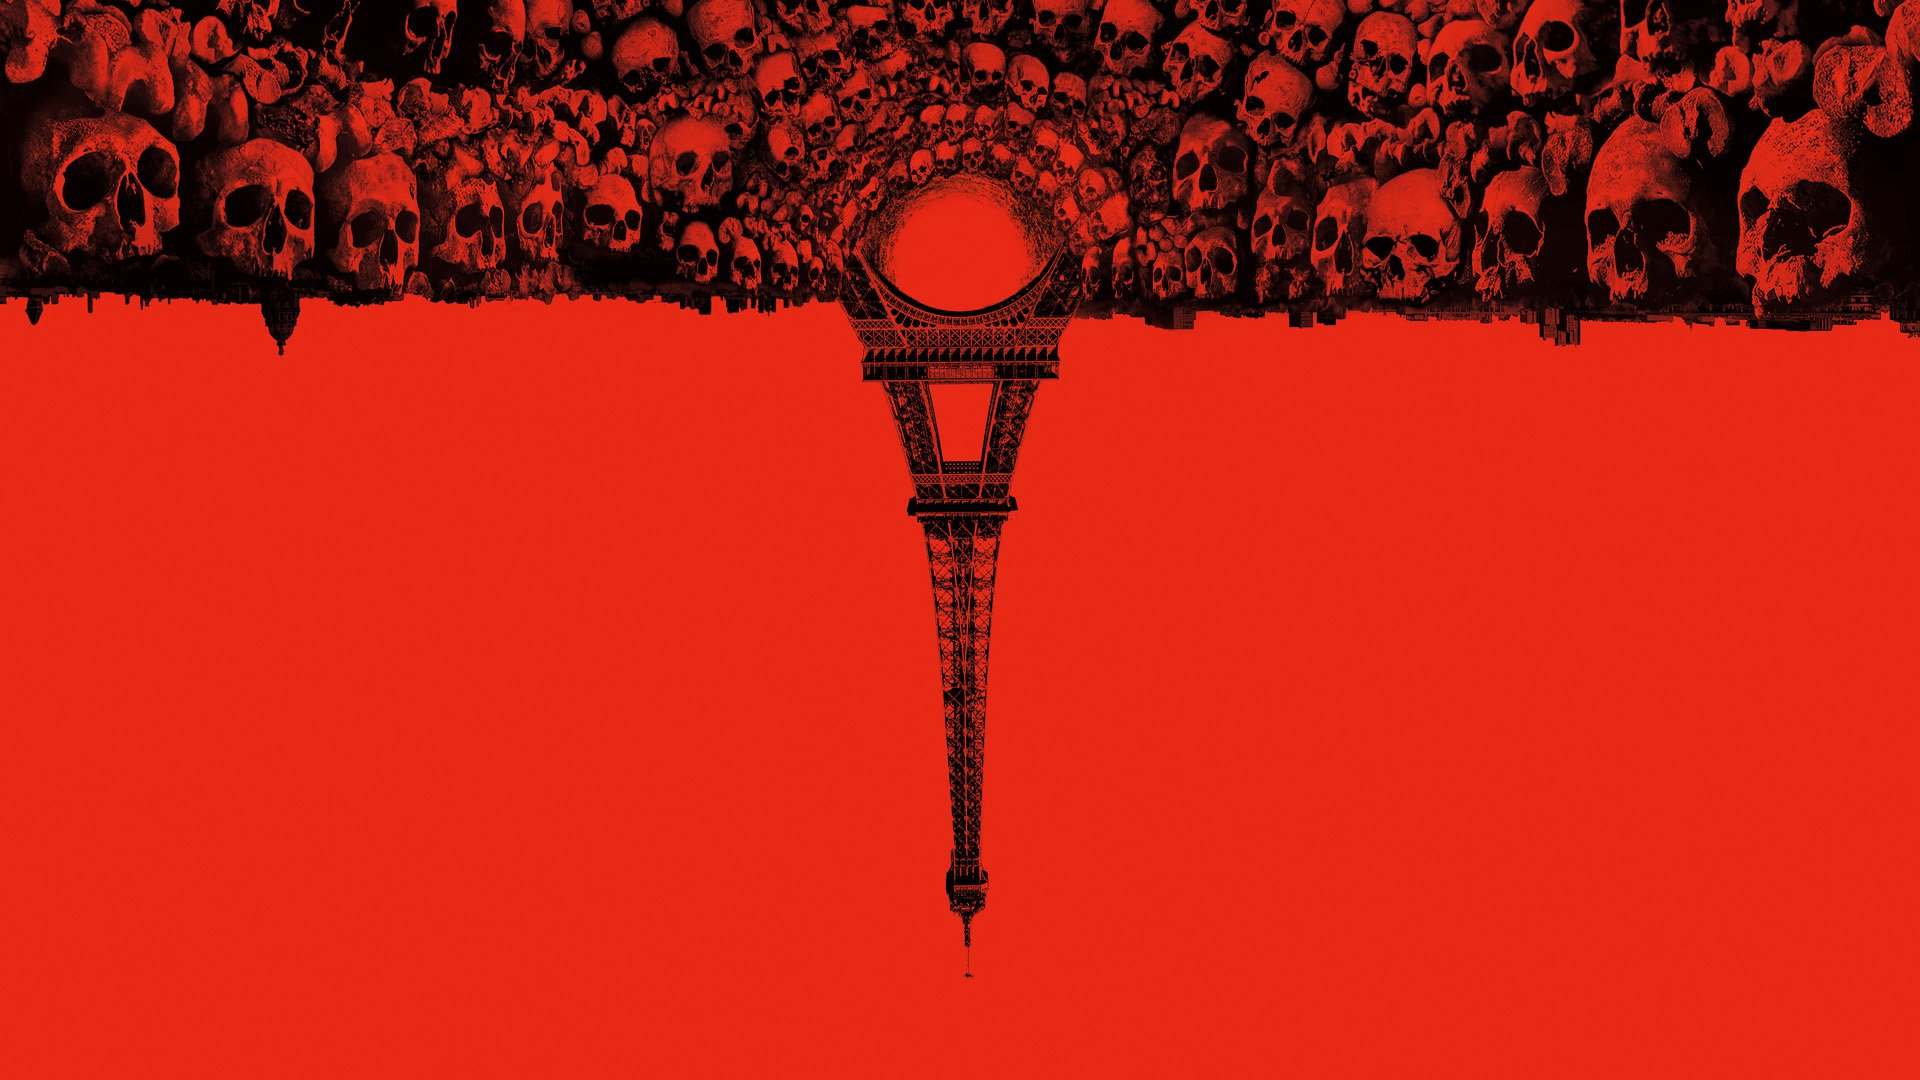 As Above So Below Hd Wallpaper Background Image 1920x1080